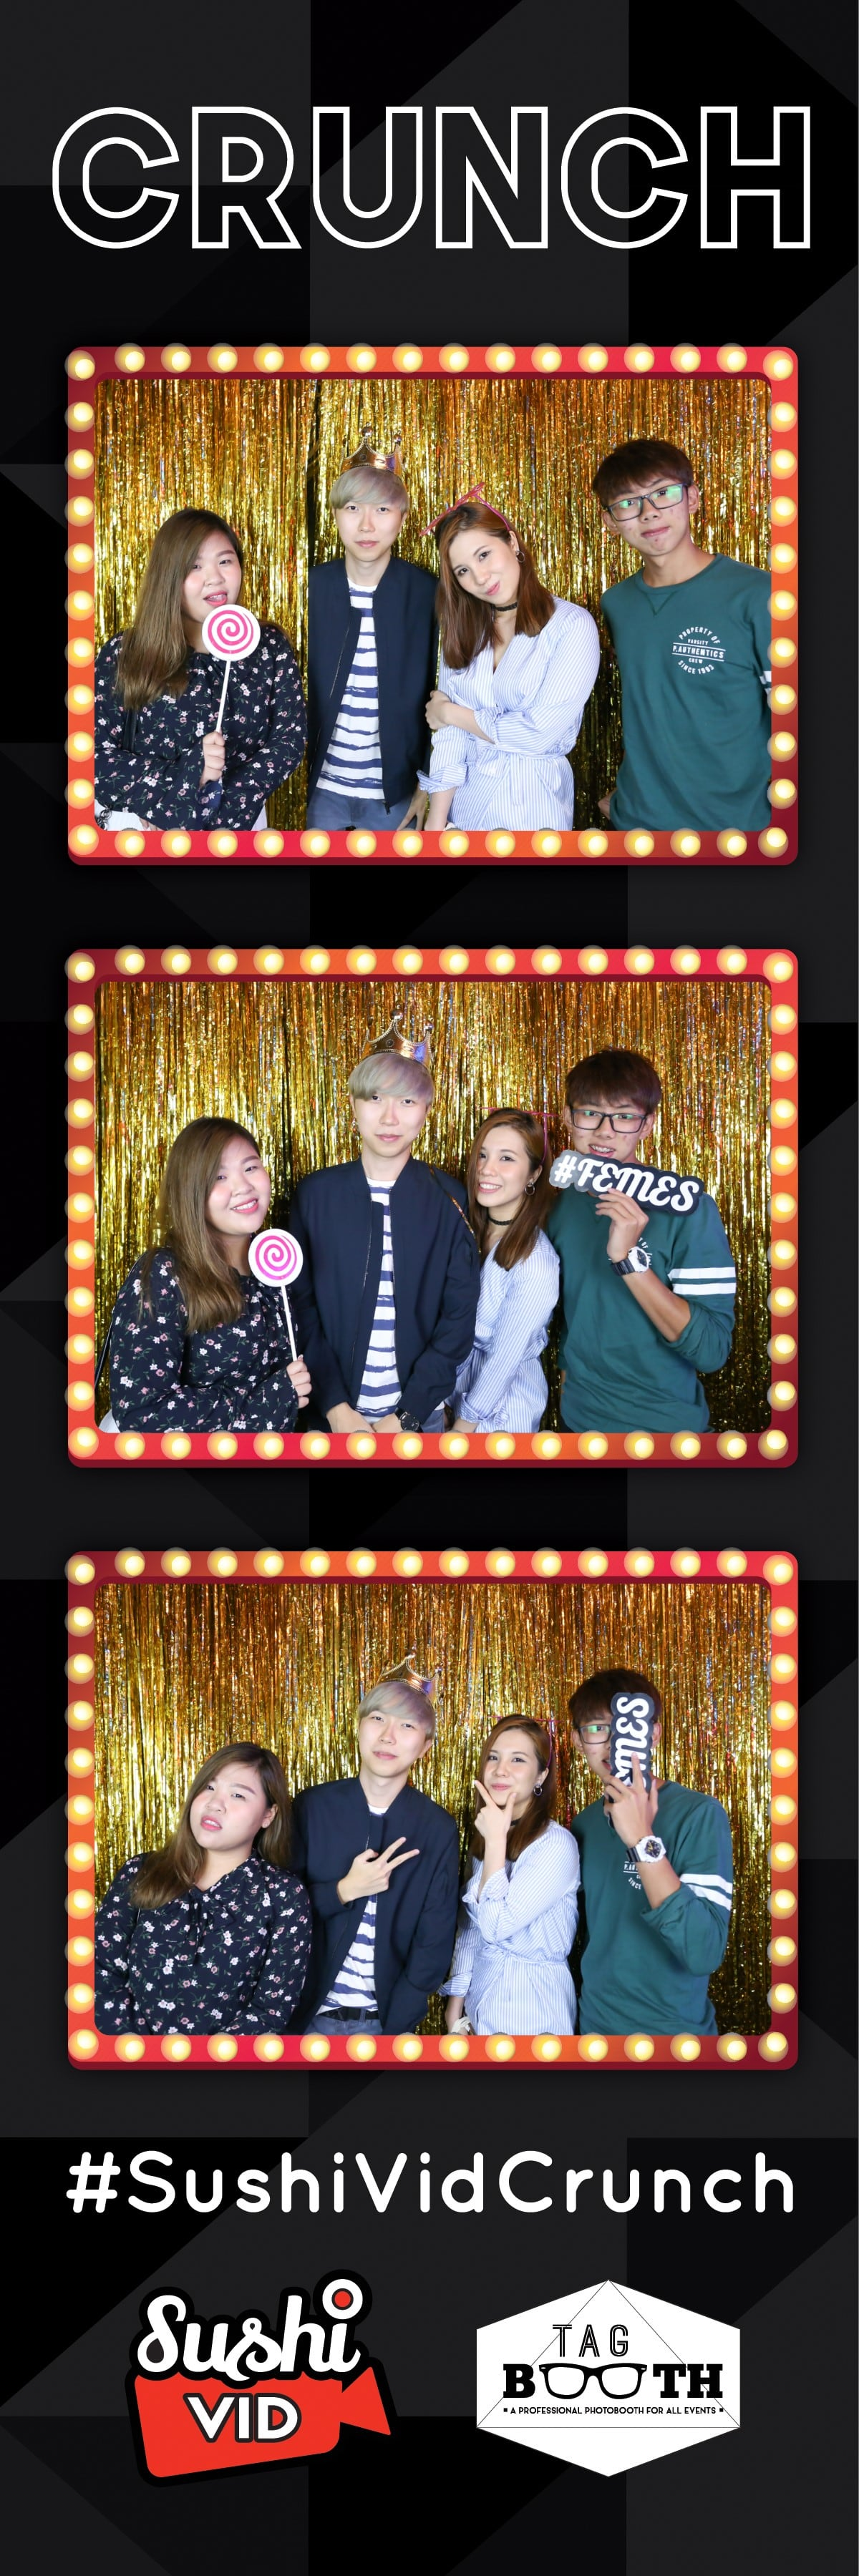 Sushivid+crunch+tagbooth1+21